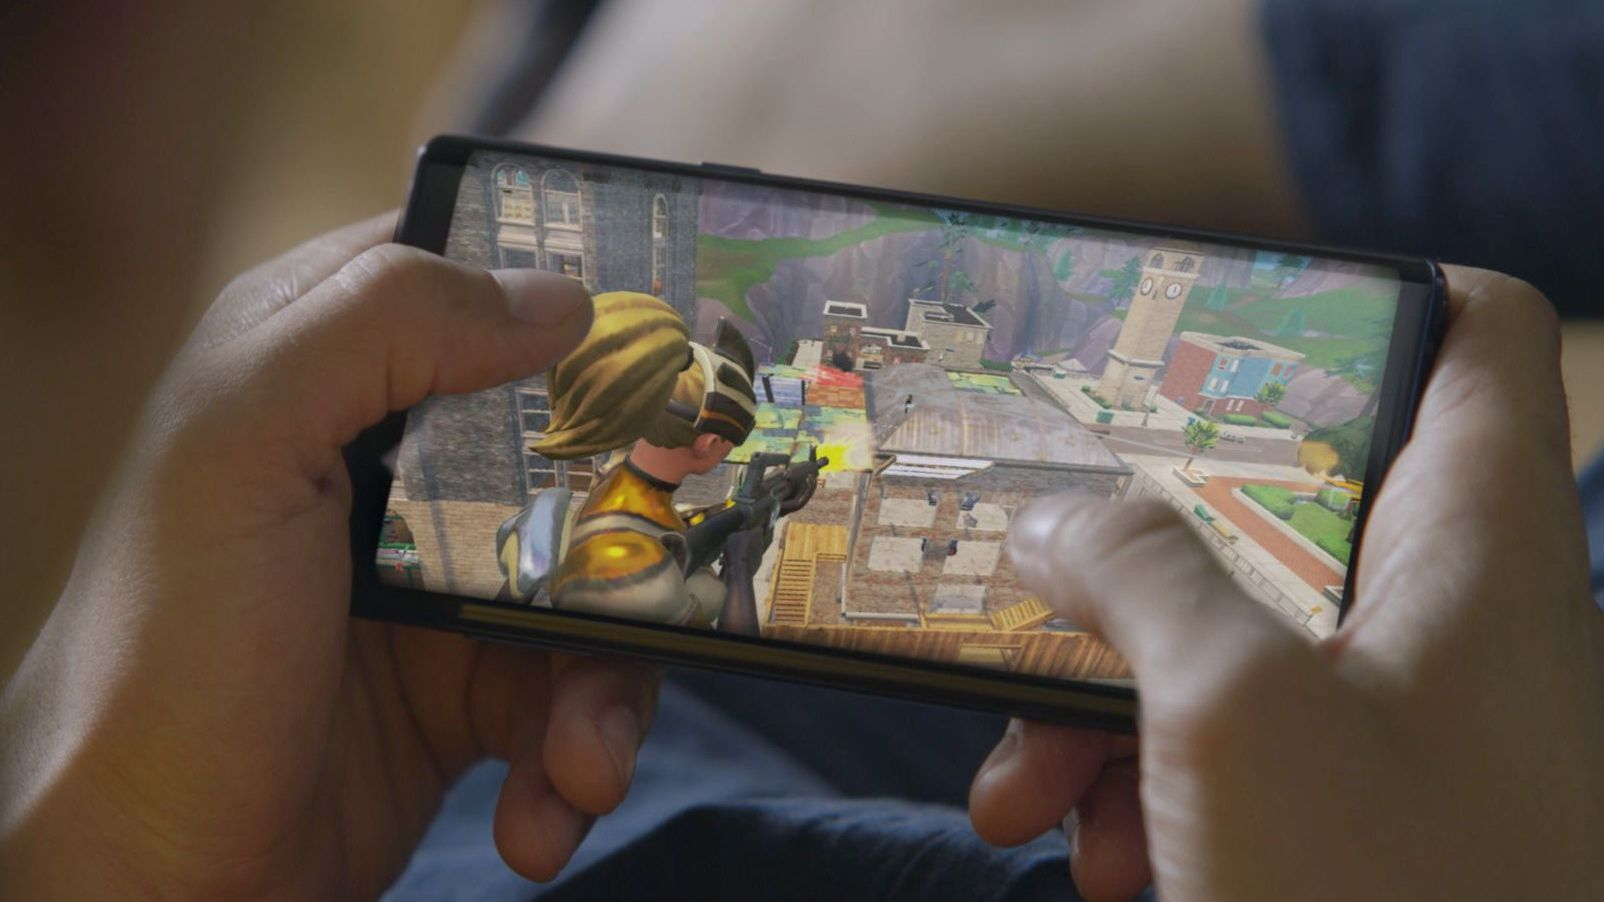 Is The Samsung S9 Promotion For Fortnite Still On Gaming With The Samsung Galaxy Note 9